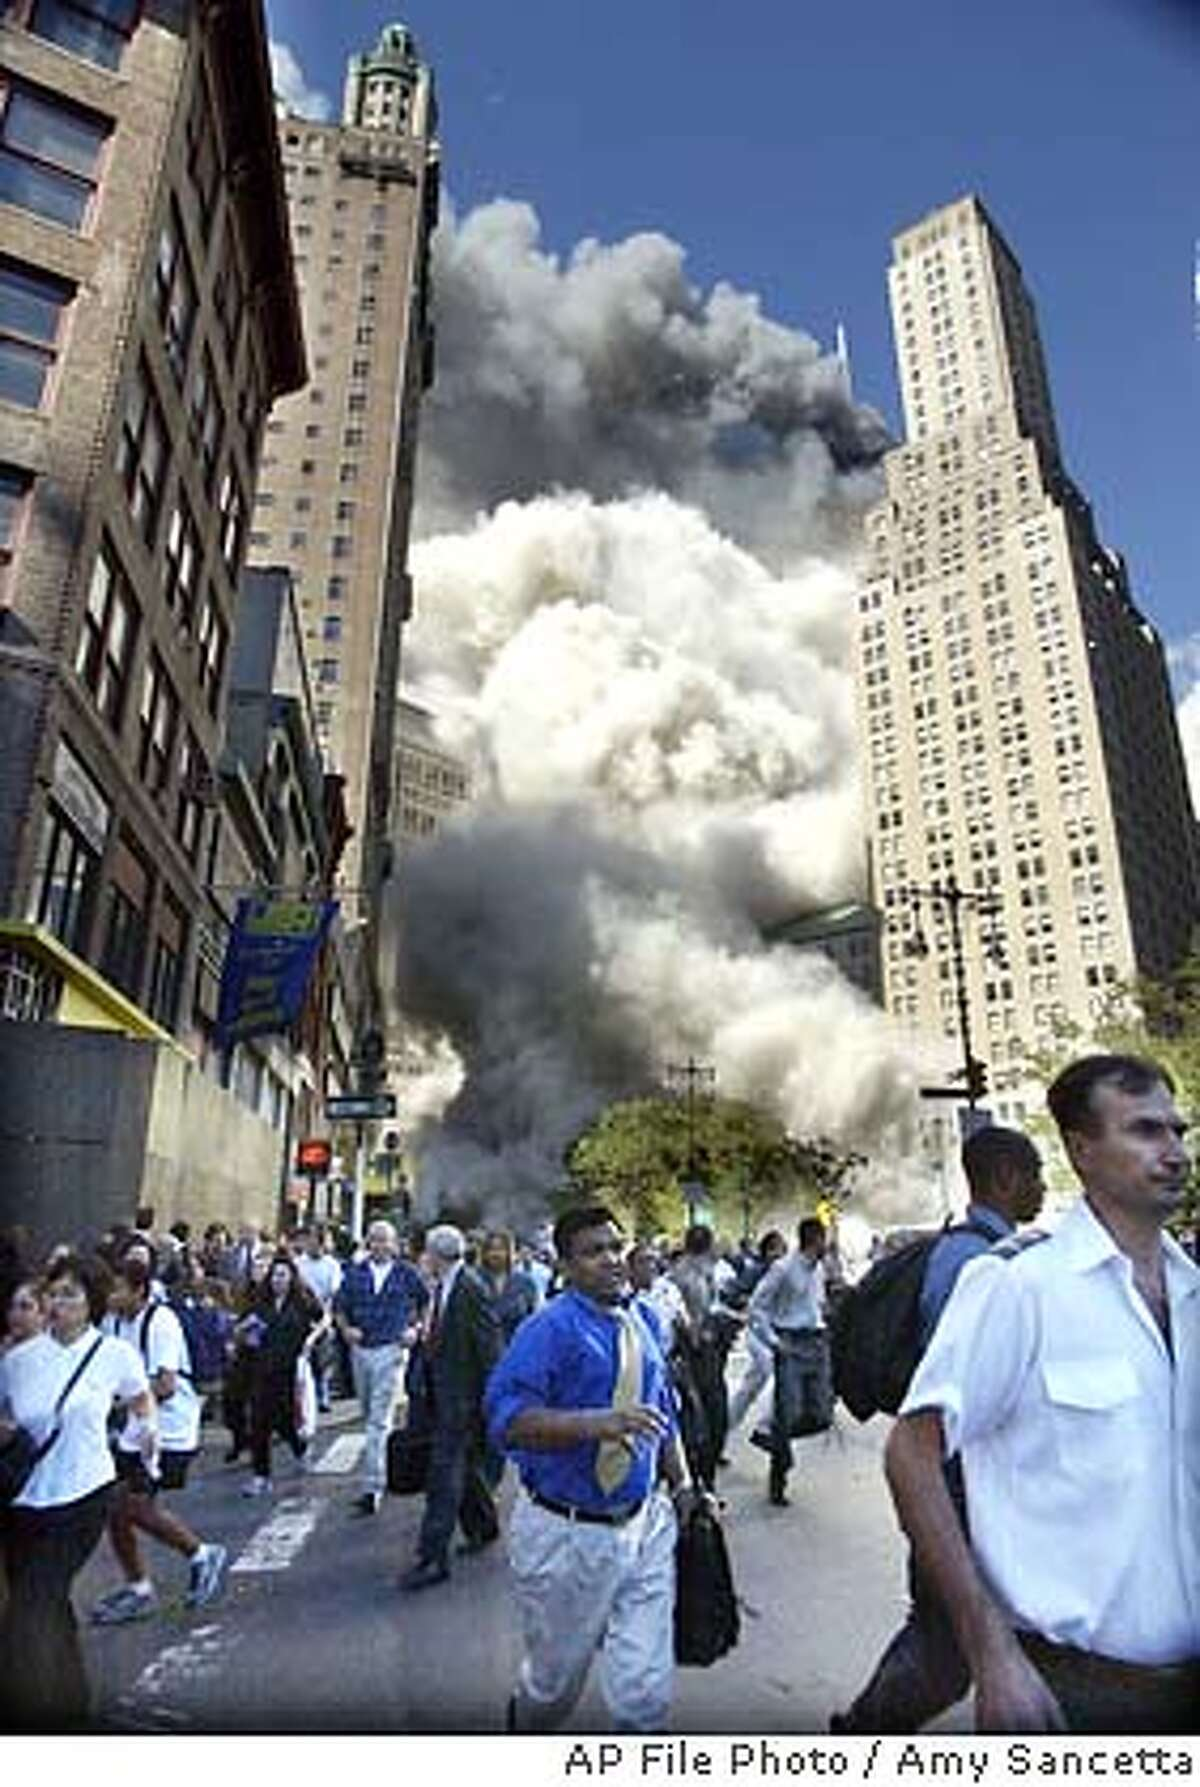 Pedestrians flee the area of the World Trade Center as the center's south tower crashes following a terrorist attack on the New York landmark Tuesday, Sept. 12, 2001. (AP Photo/Amy Sancetta)